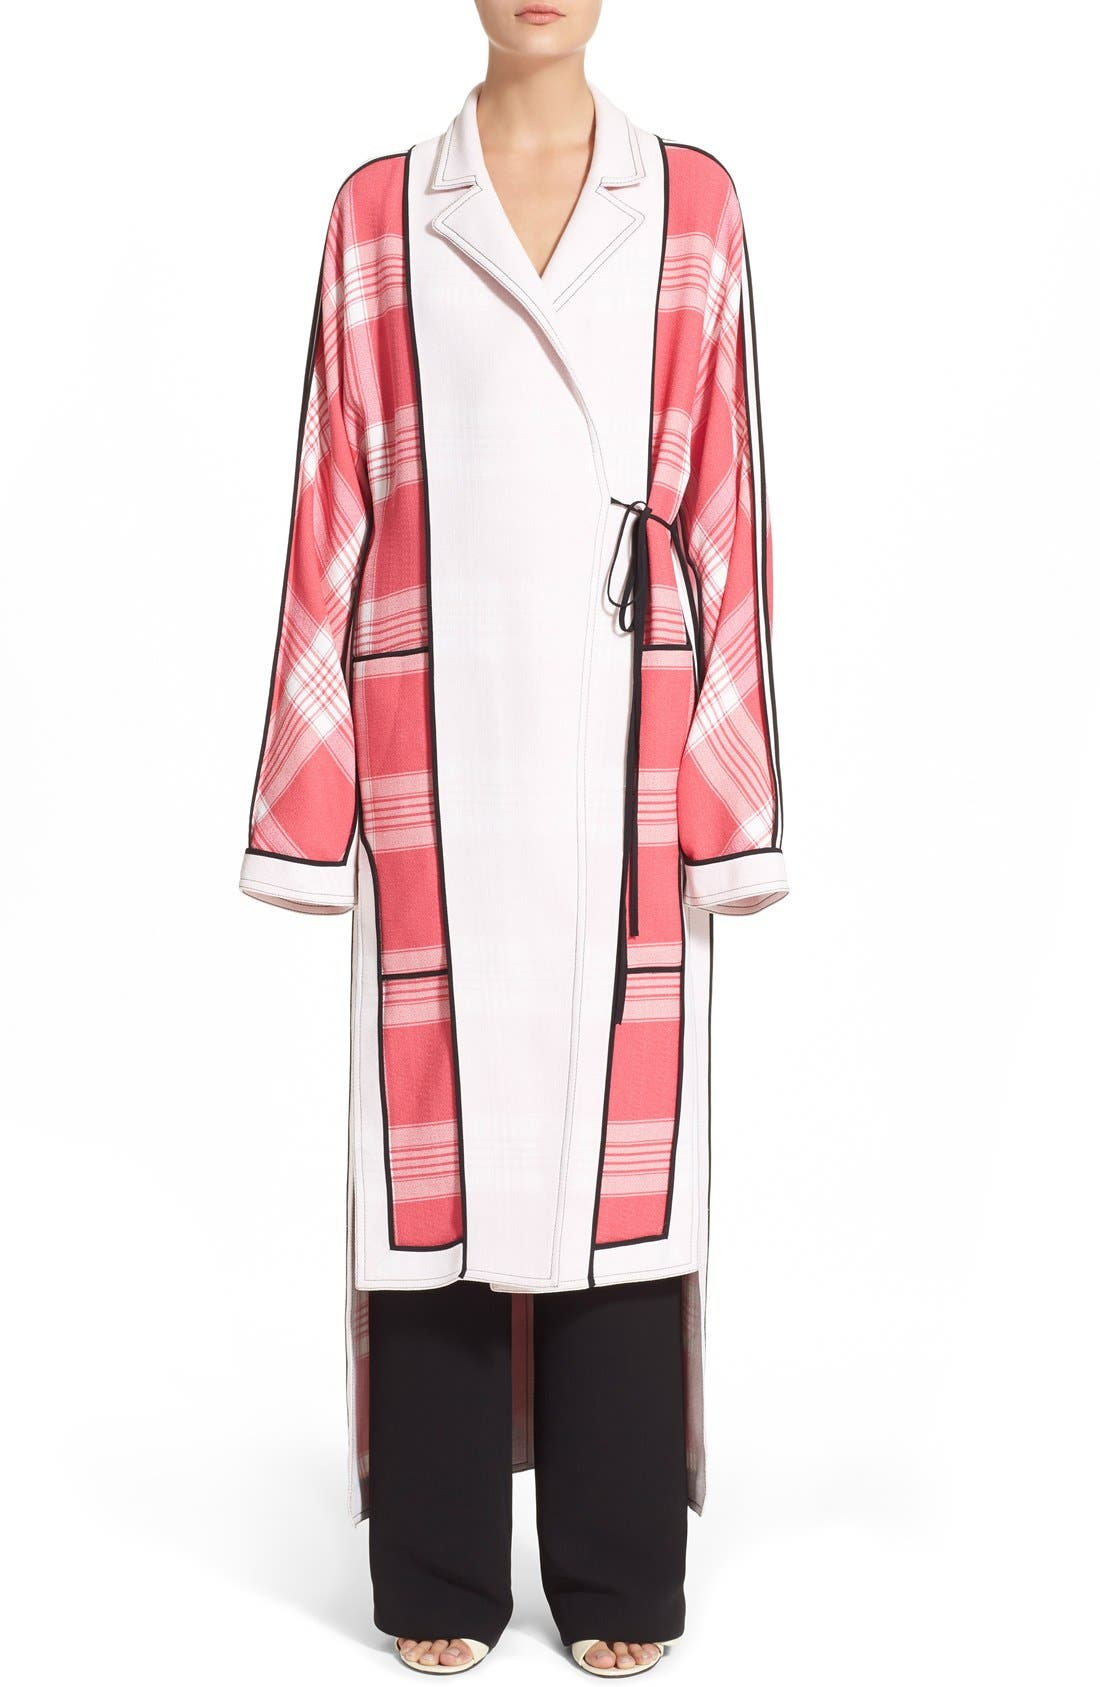 Alternate Image 2 Selected - ACNE Studios 'Vaughn Frosted' Tie Front Cardigan